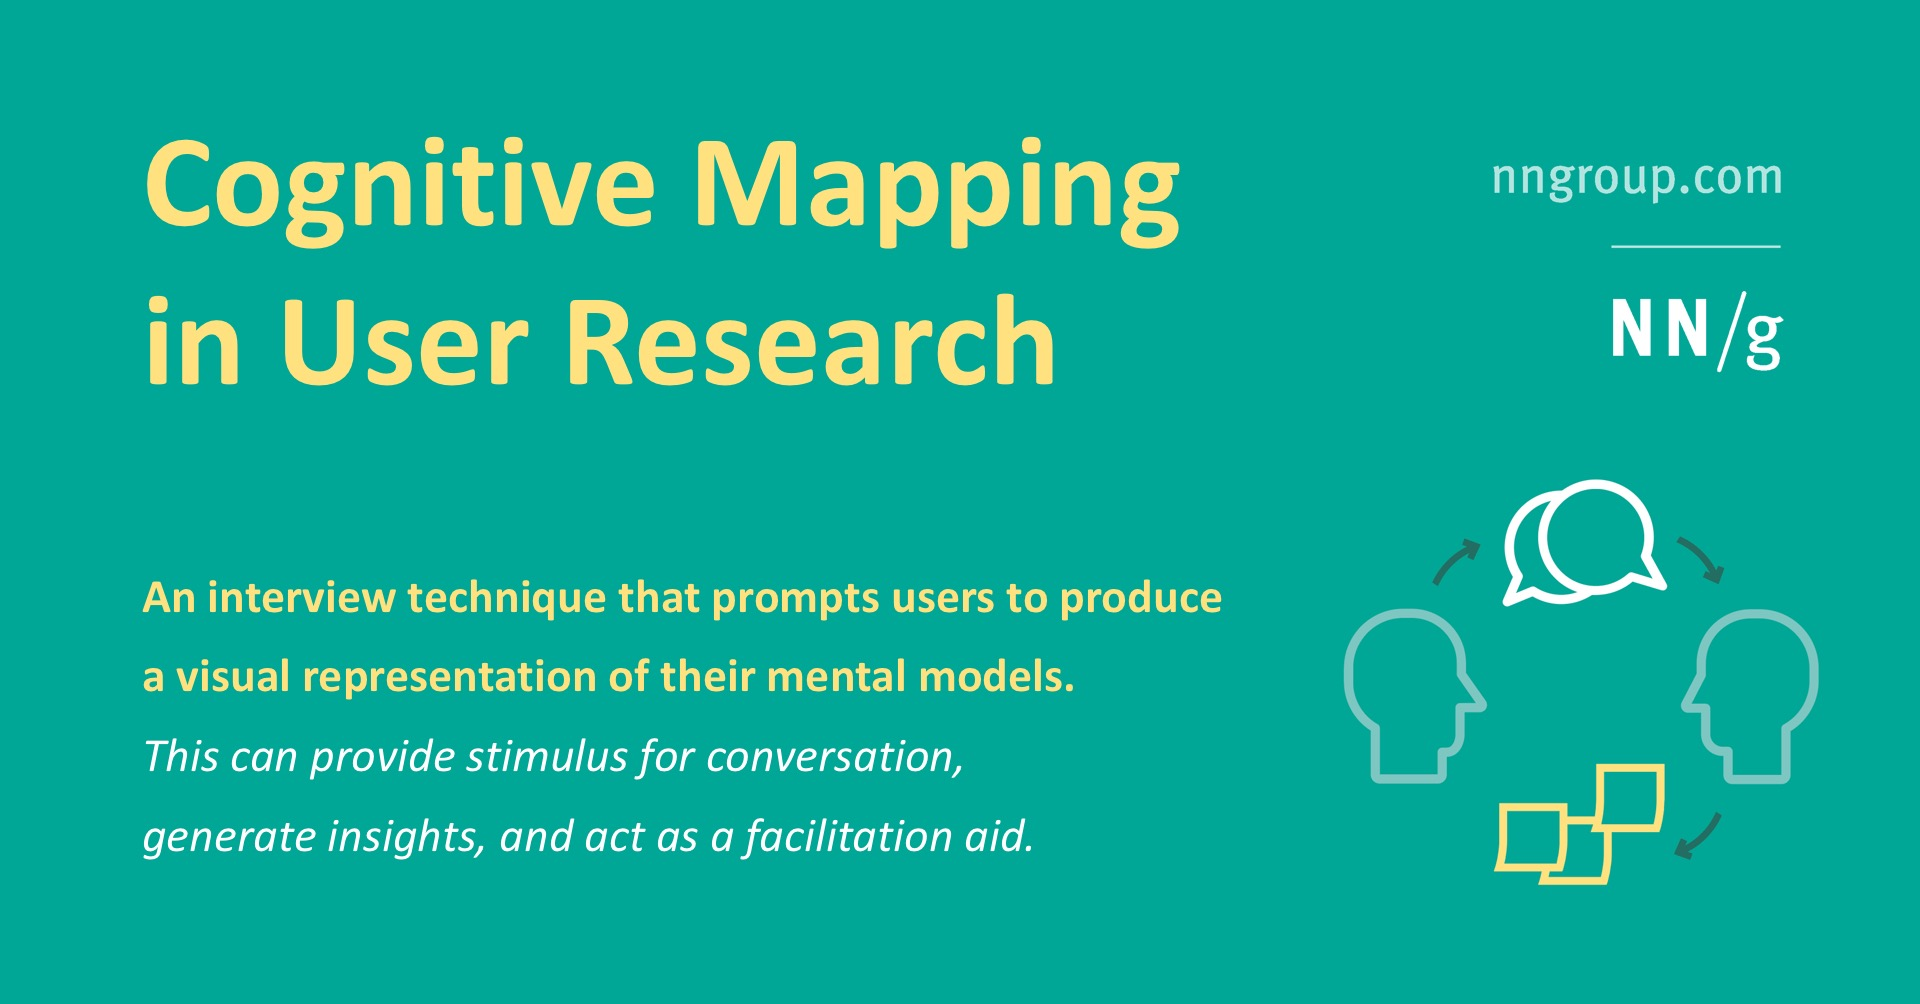 Cognitive Mapping in User Research